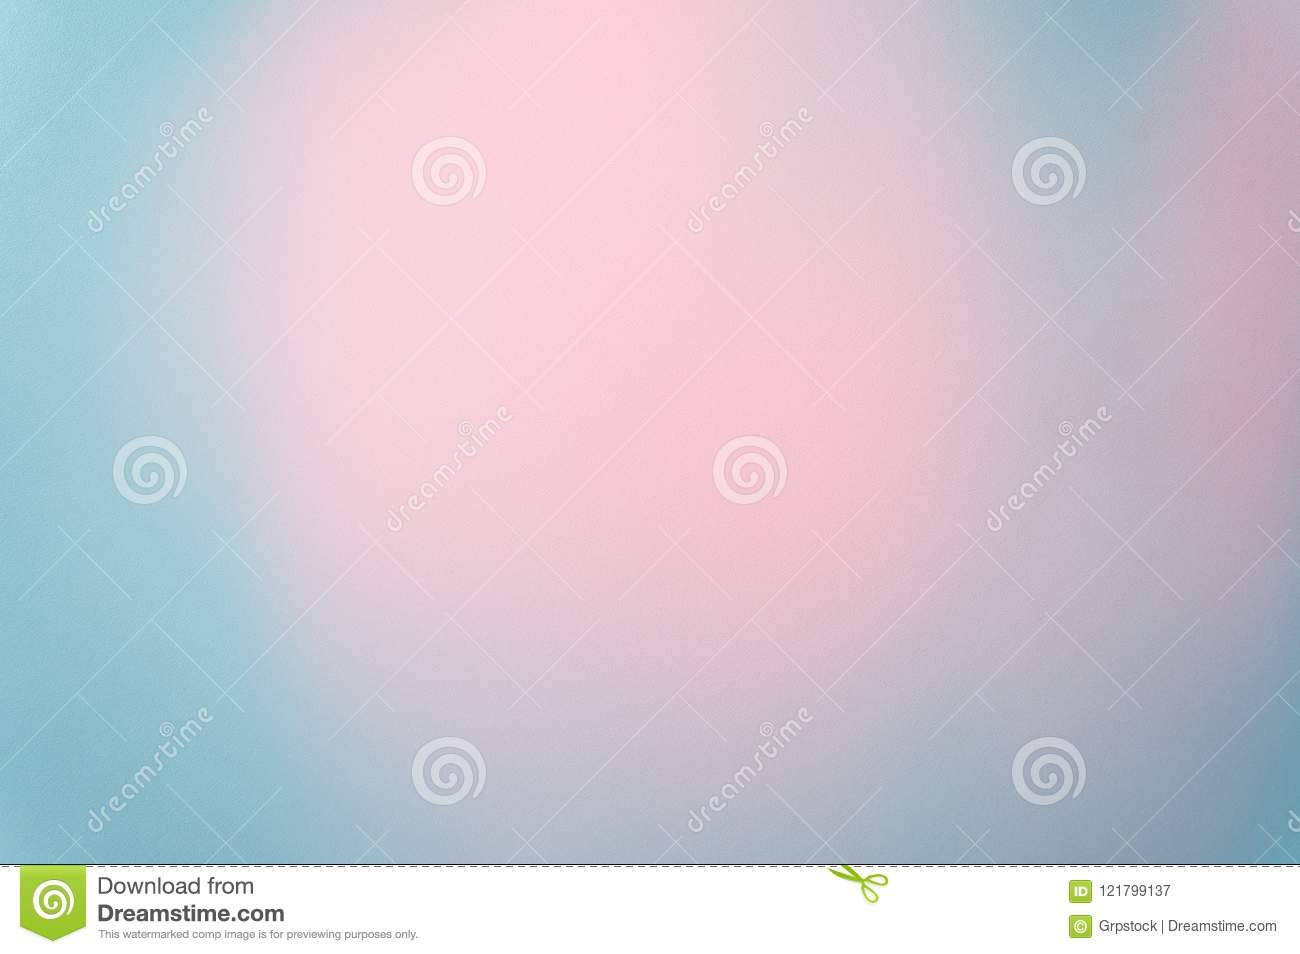 Blue Pastel Background Paper Texture Pattern Soft Focus Photo With Pink Pastel In The Middle, Abstract Art Background